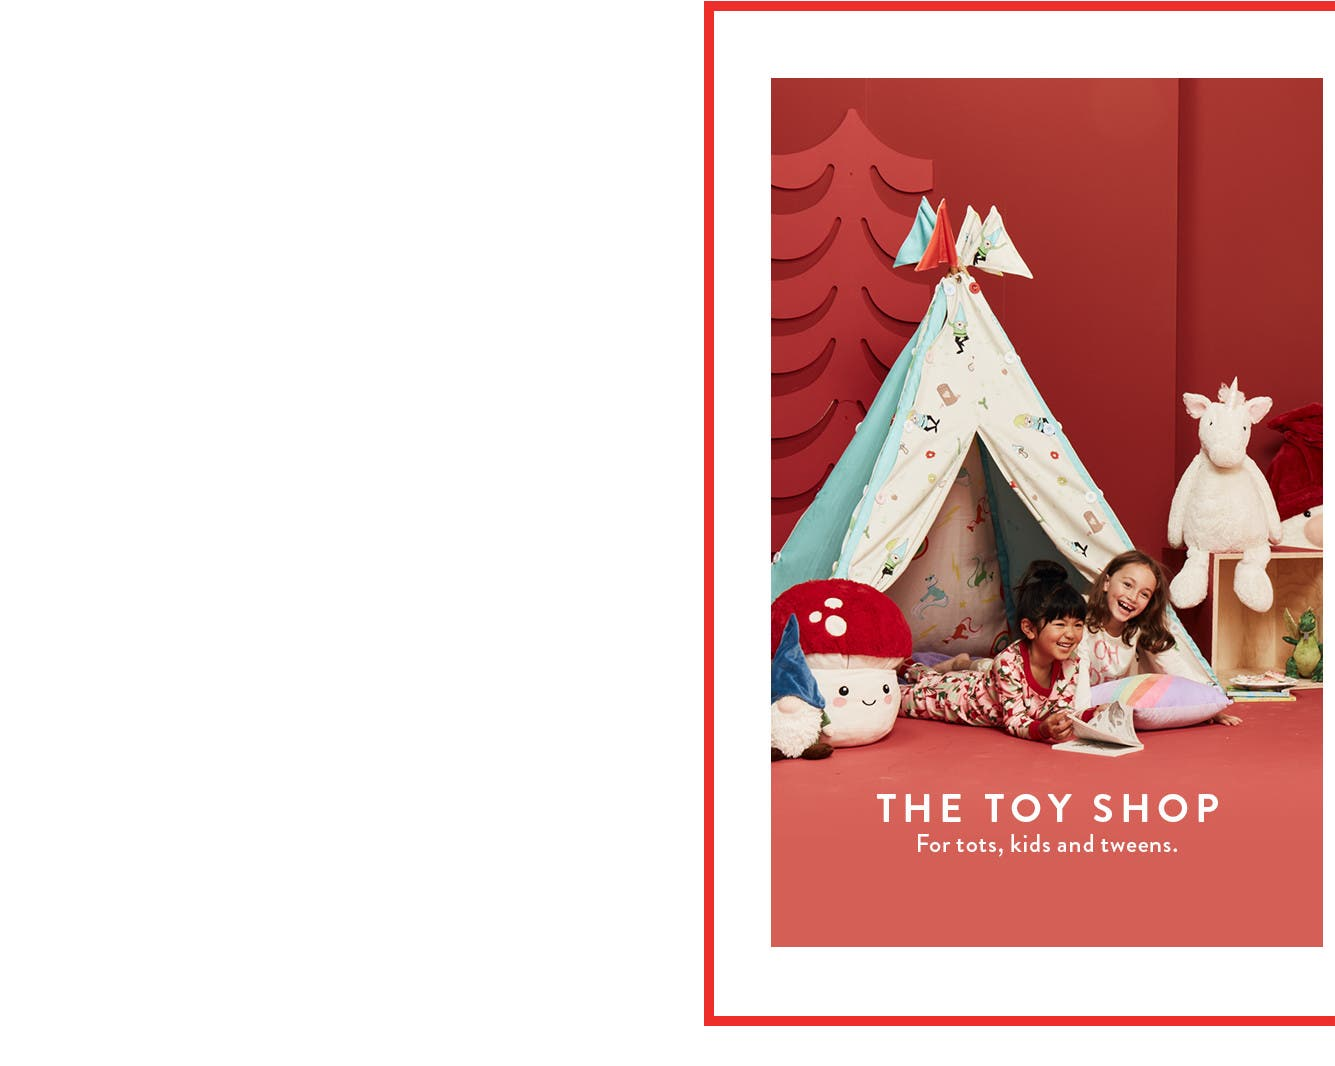 The Toy Shop.